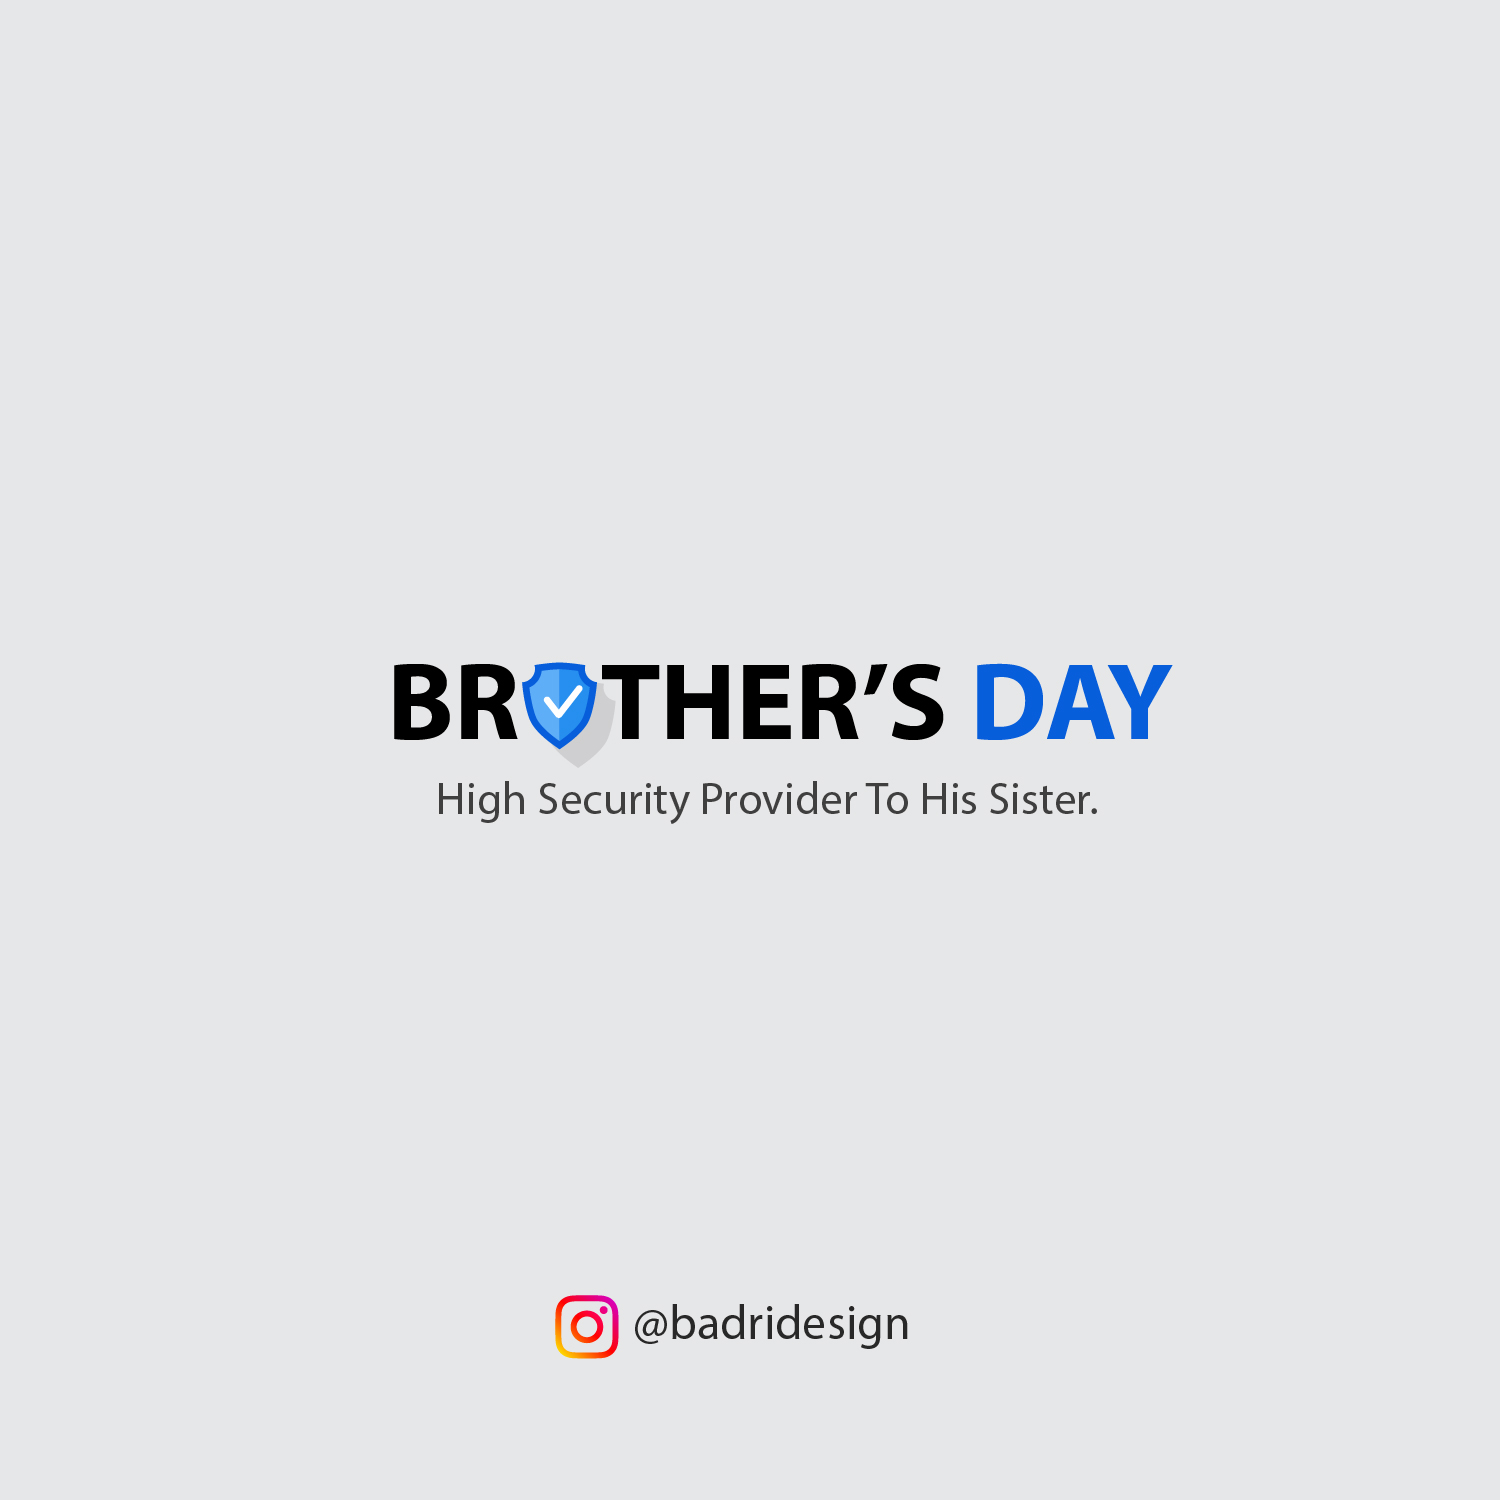 Topical post design on brother's day by Badri Design